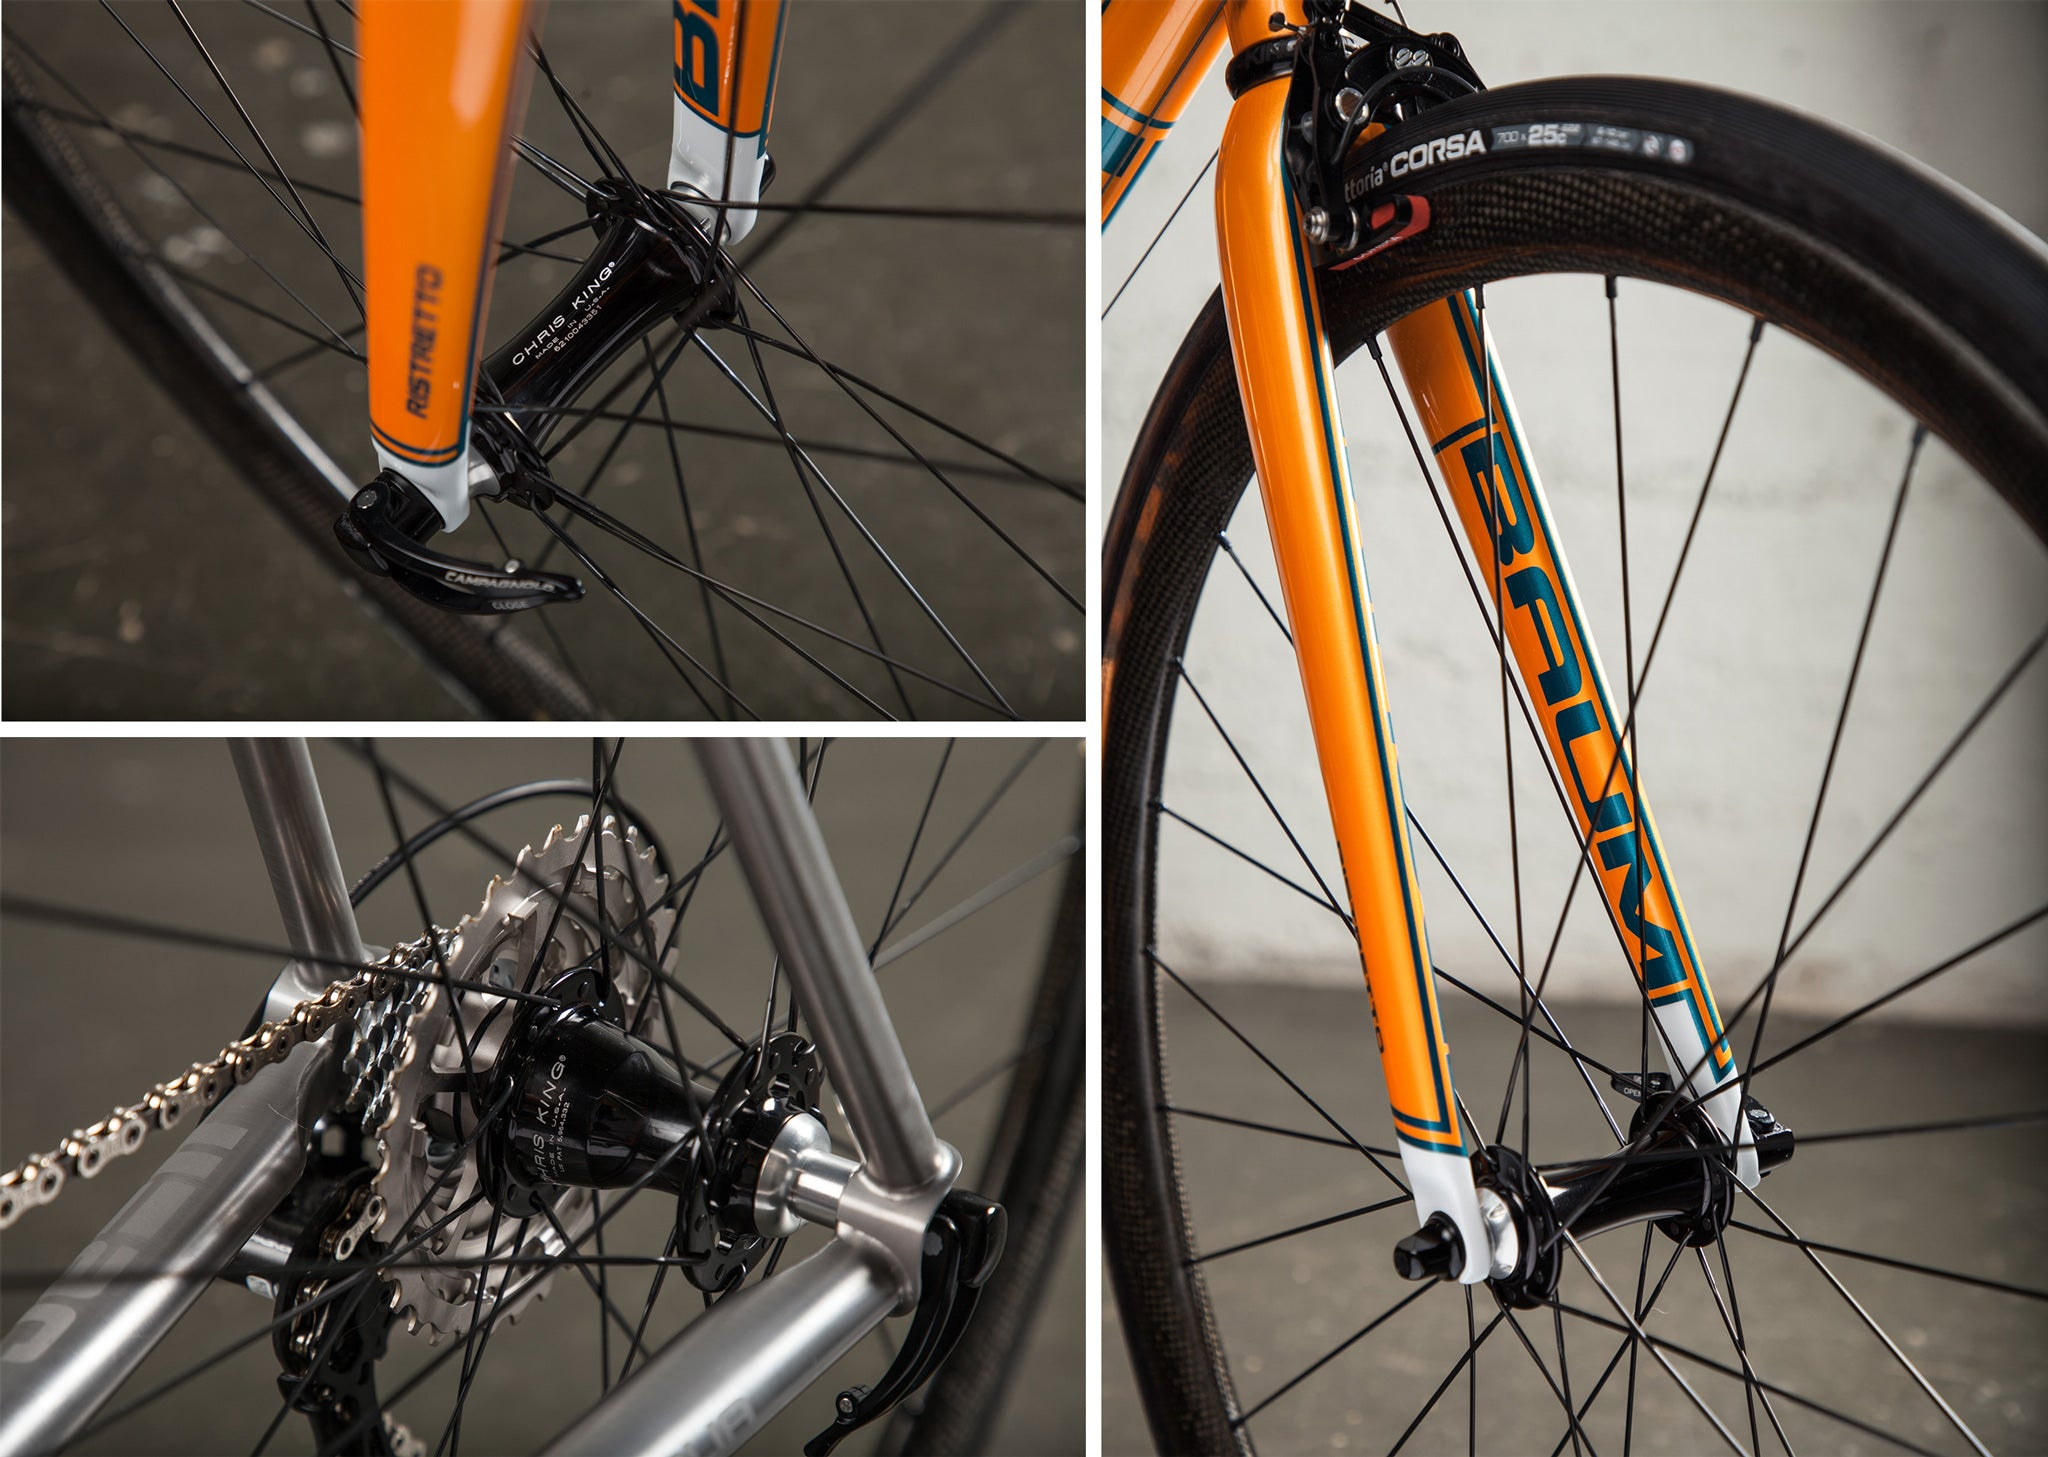 baum ristretto orange super record JC wheels